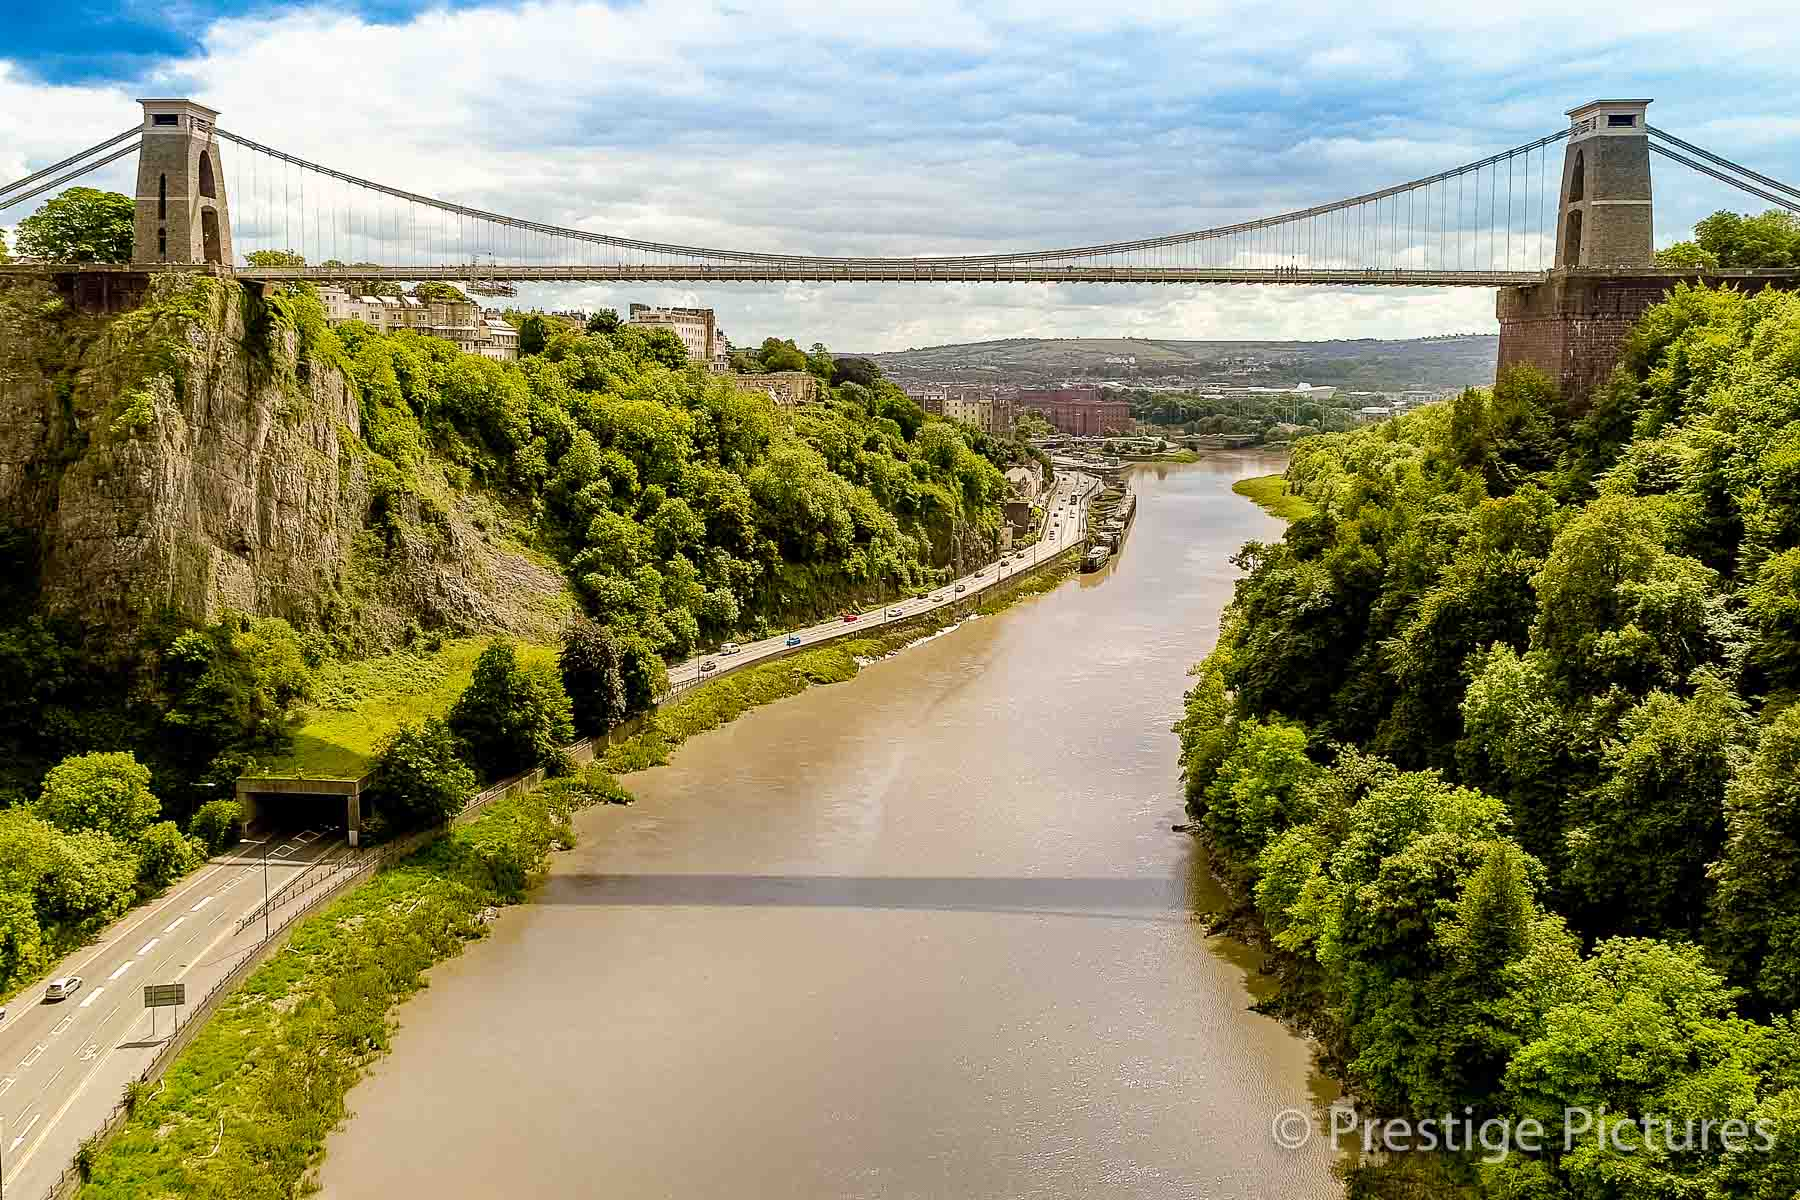 Aerial view of The River Avon and the Clifton Suspension Bridge